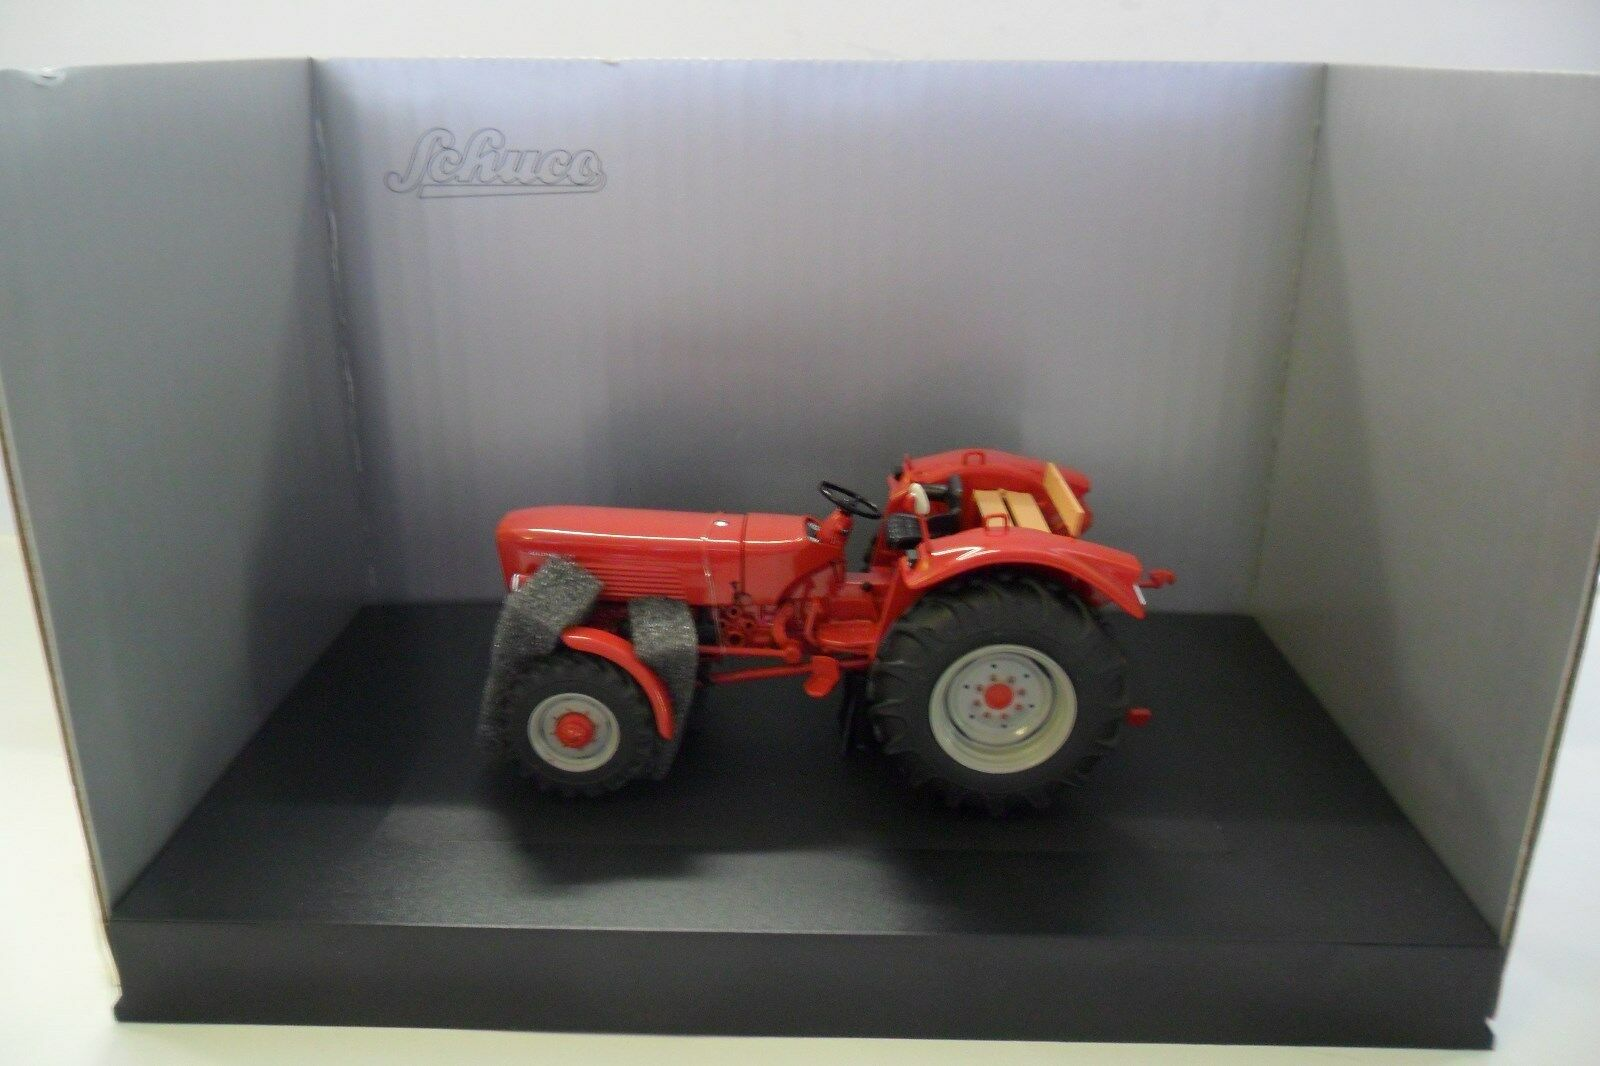 SCHUCO 1 32 TRATTORE TRACTOR  GÜLDNER G75 A rouge rouge  ART 7783